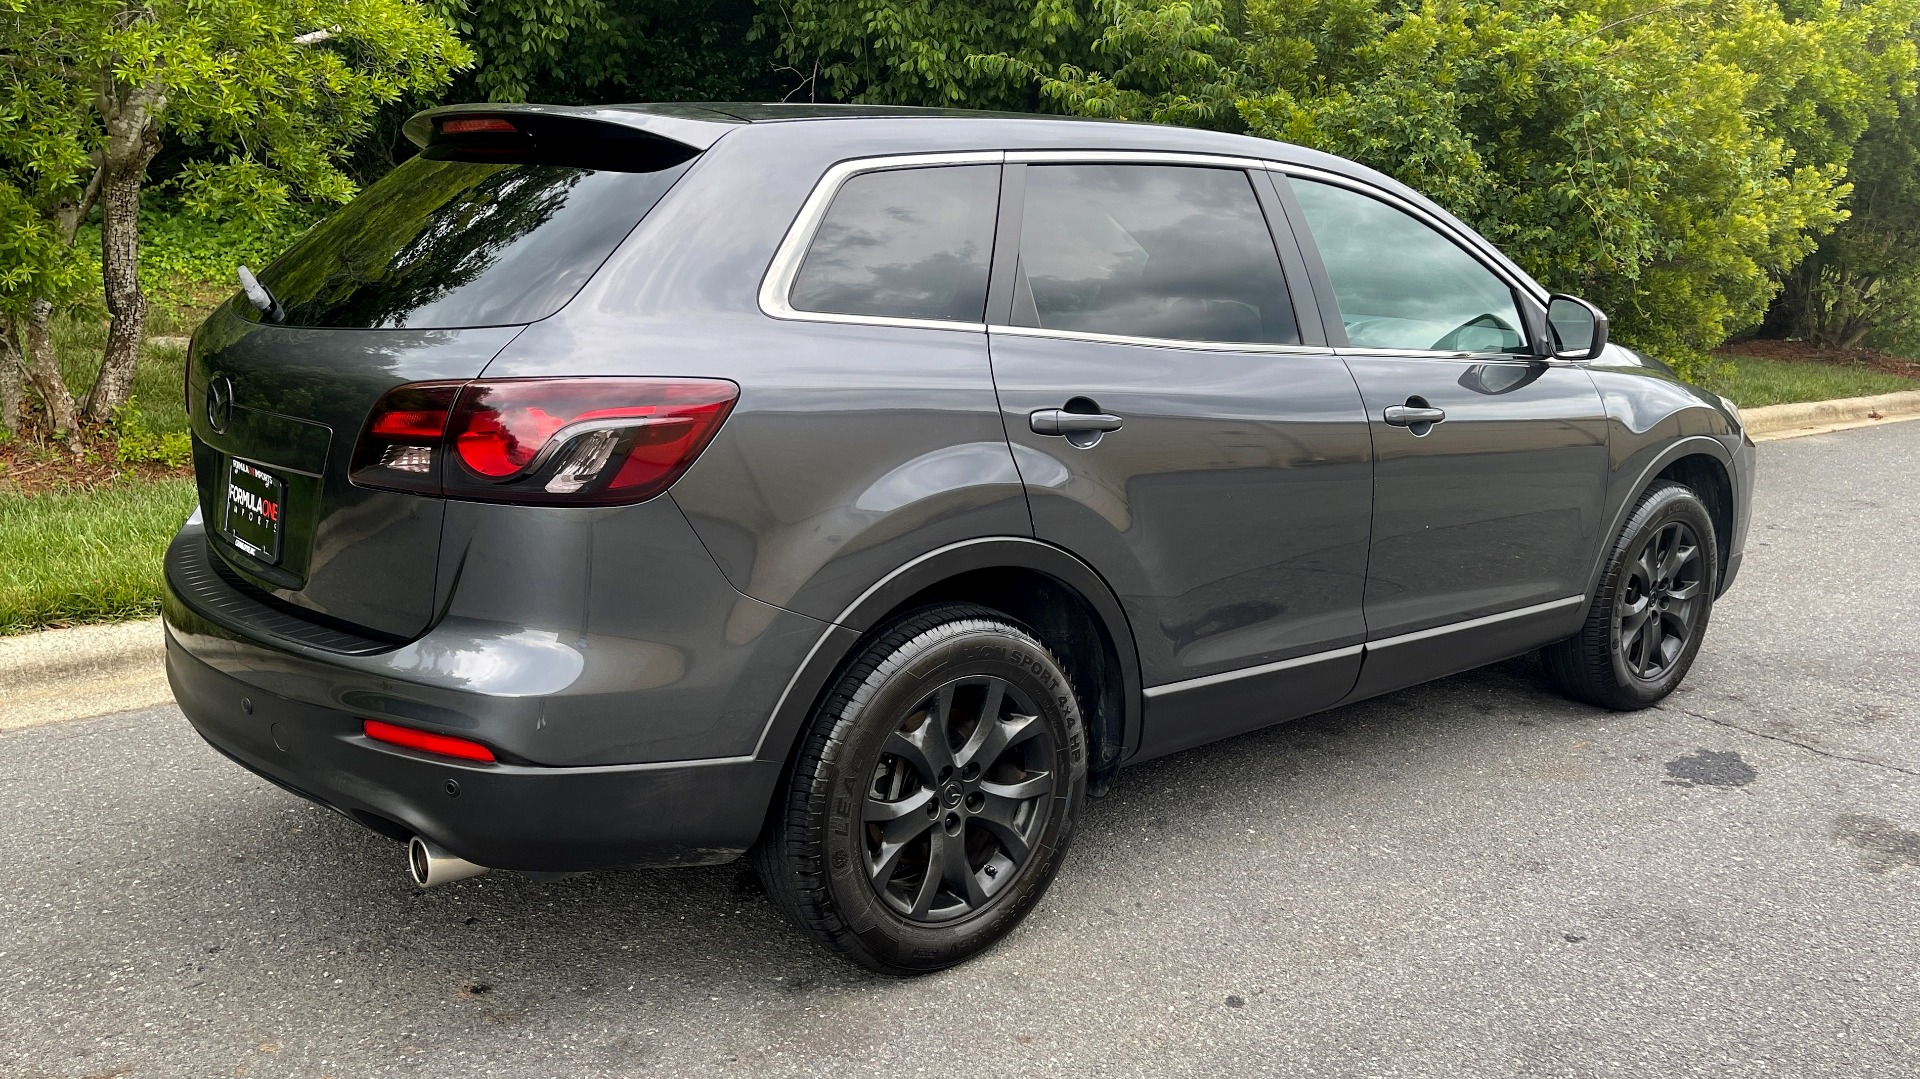 Used 2014 Mazda CX-9 TOURUNG / FWD / 3.7L V6 / 6-SPD AUTO / HTD STS / 3-ROW / REARVIEW for sale $14,995 at Formula Imports in Charlotte NC 28227 2